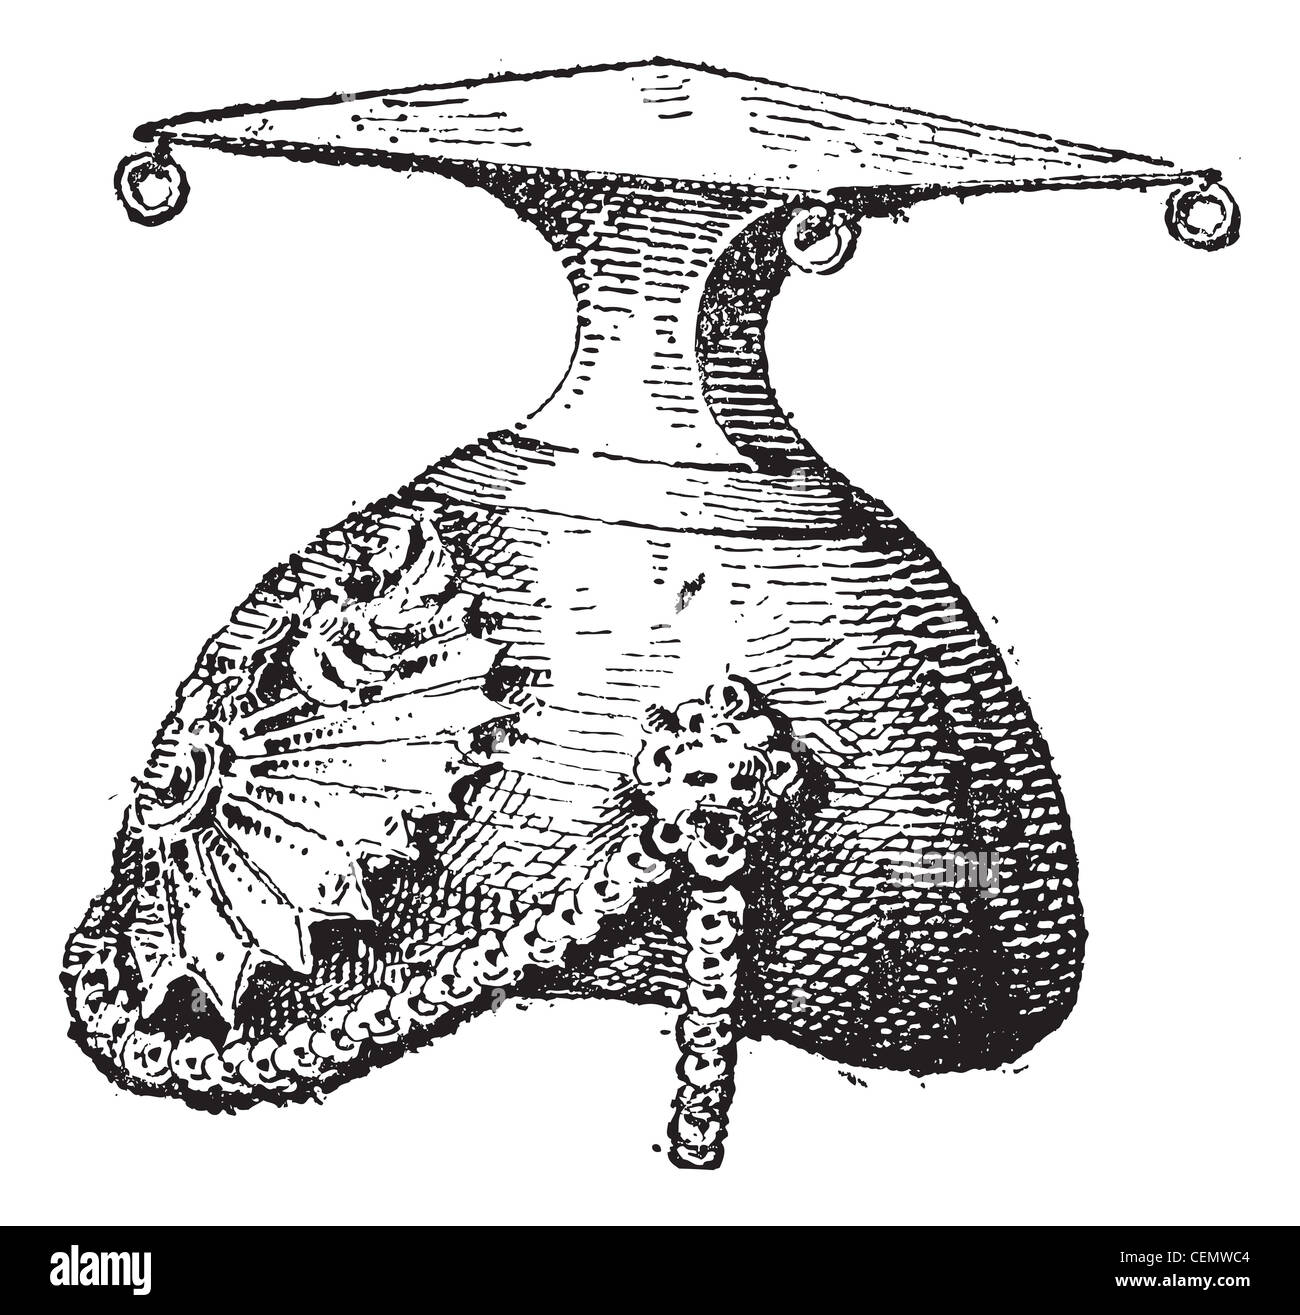 Czapka, vintage engraved illustration. Dictionary of words and things - Larive and Fleury - 1895. - Stock Image